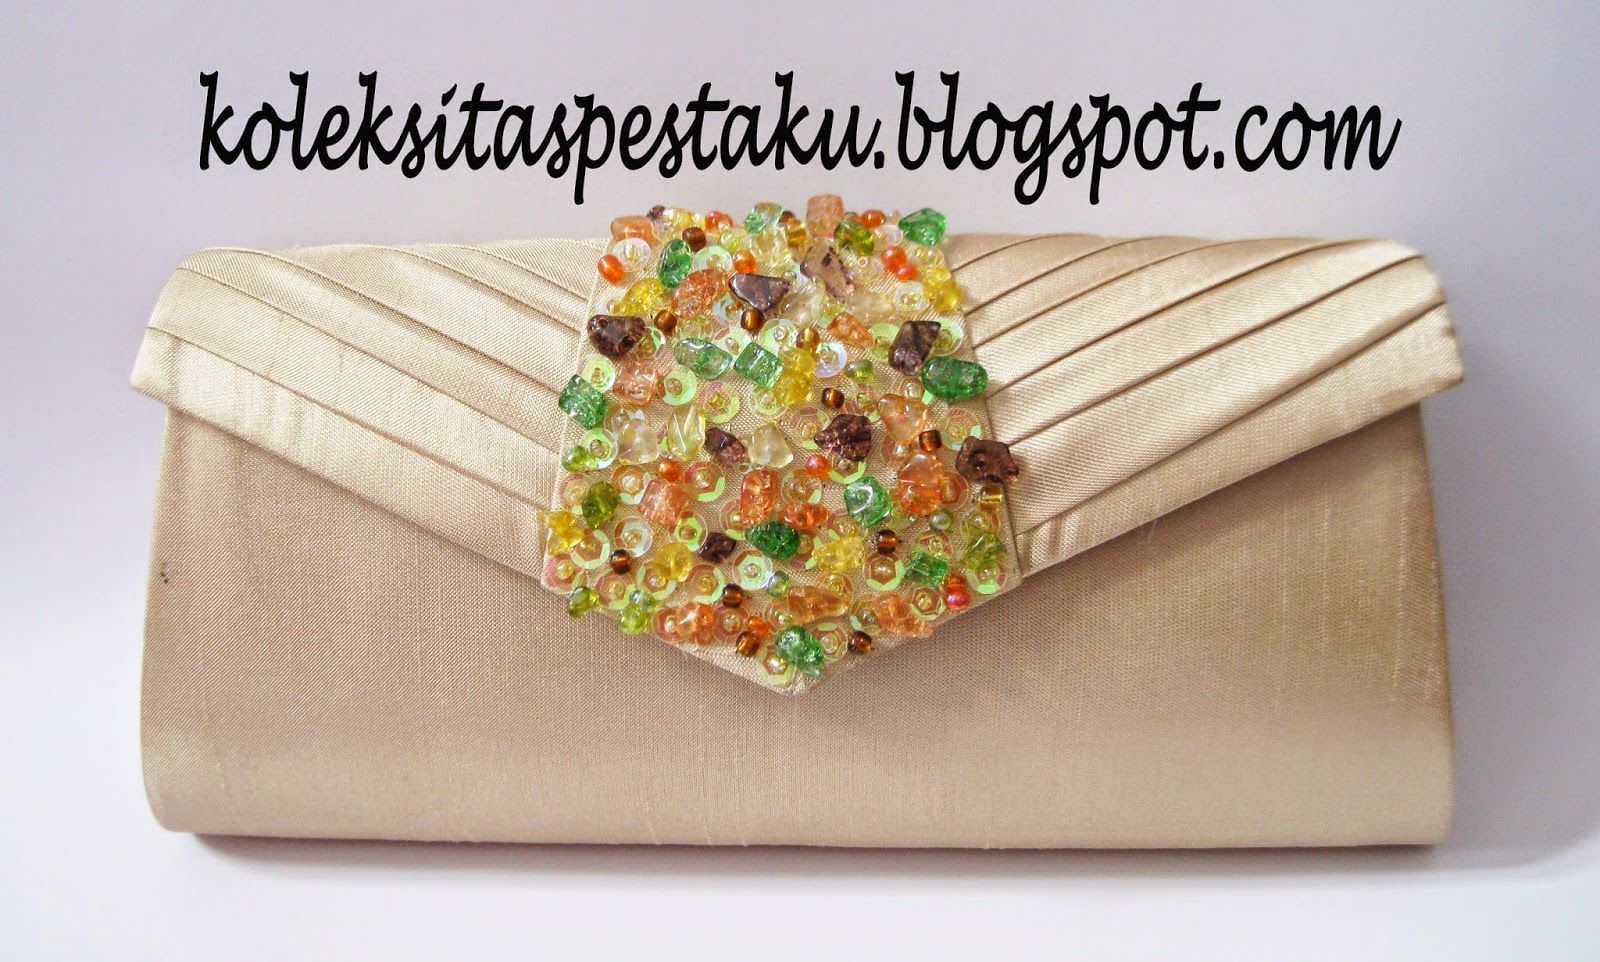 unik awet harga murah clutch bag cream